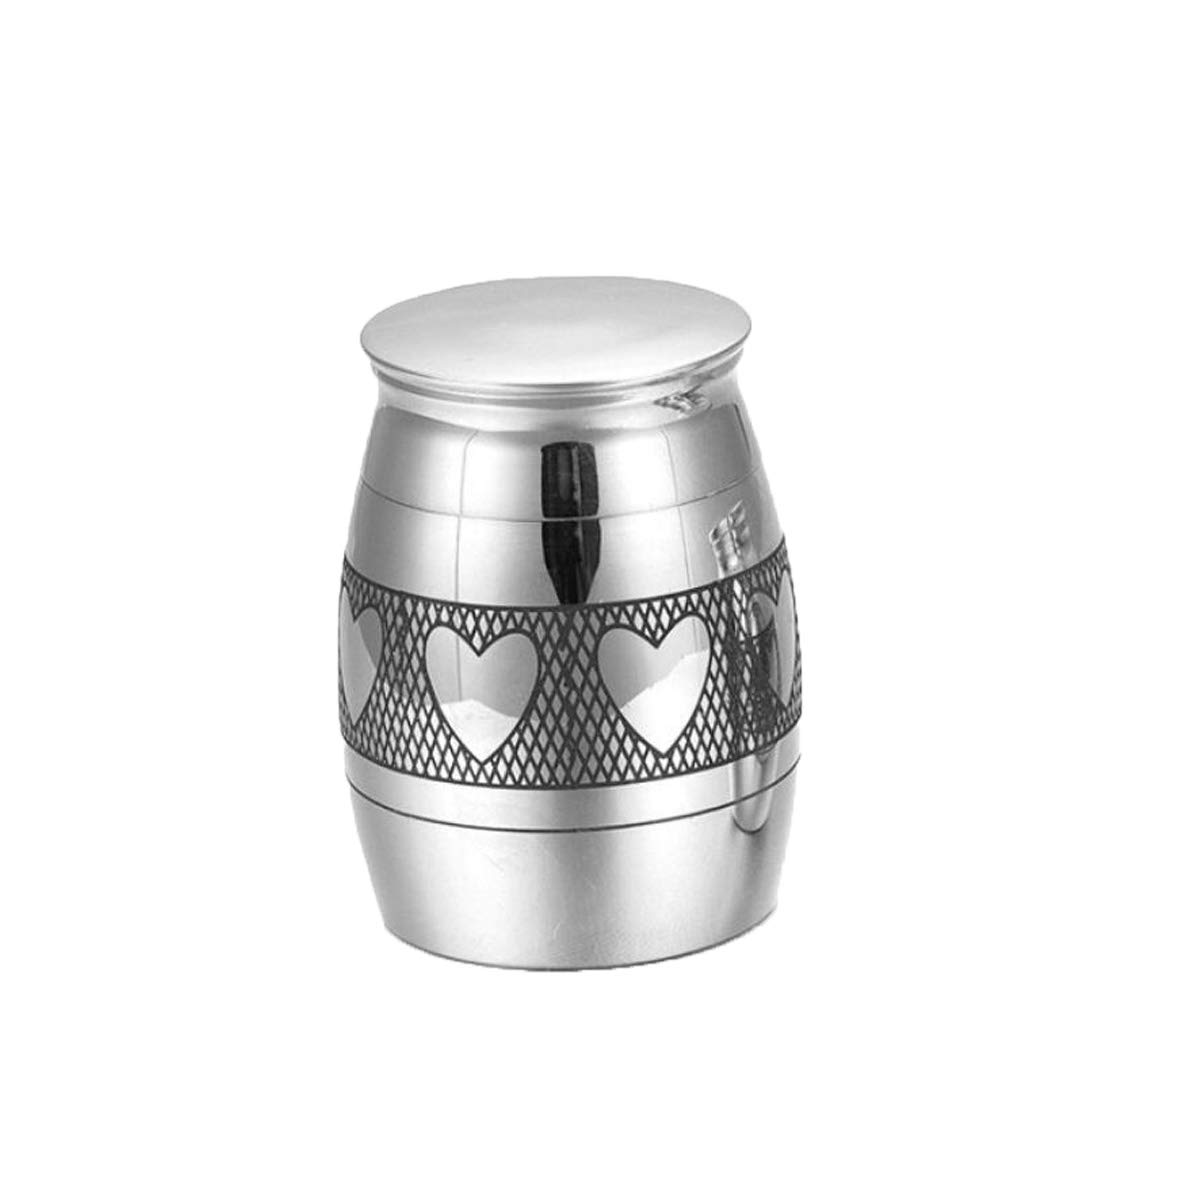 4029mm XIAN Ashes, Titanium Steel, Openable, Ashes, Jars, Souvenirs, Pets, Dogs and Urns, Placed, Heart (Size   40  29mm)